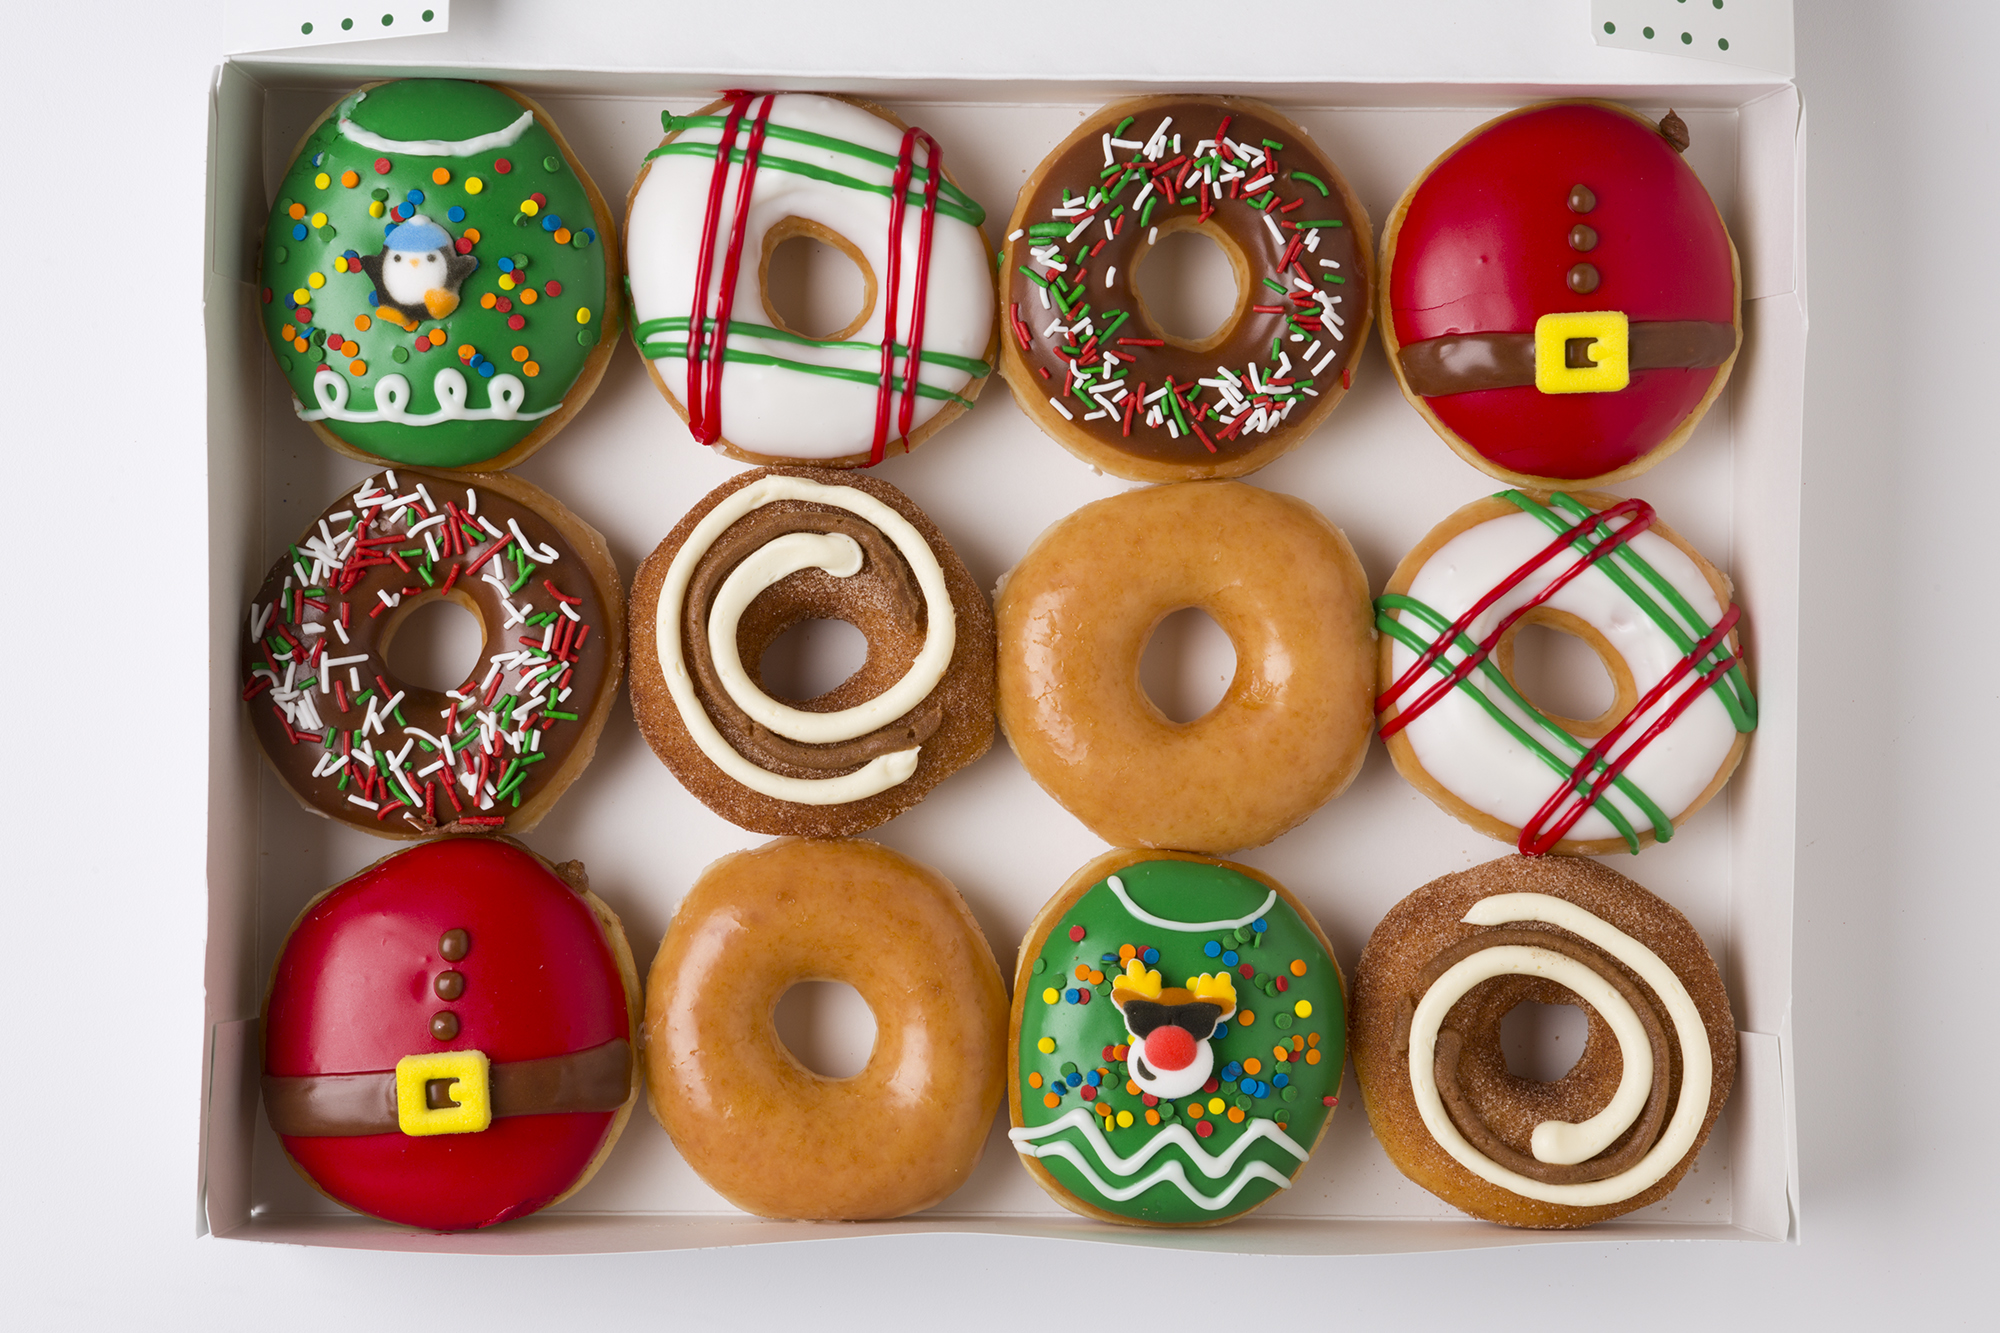 You Can Get a Dozen Krispy Kreme Donuts for $1 Next Week krispy-kreme-holiday-ltos